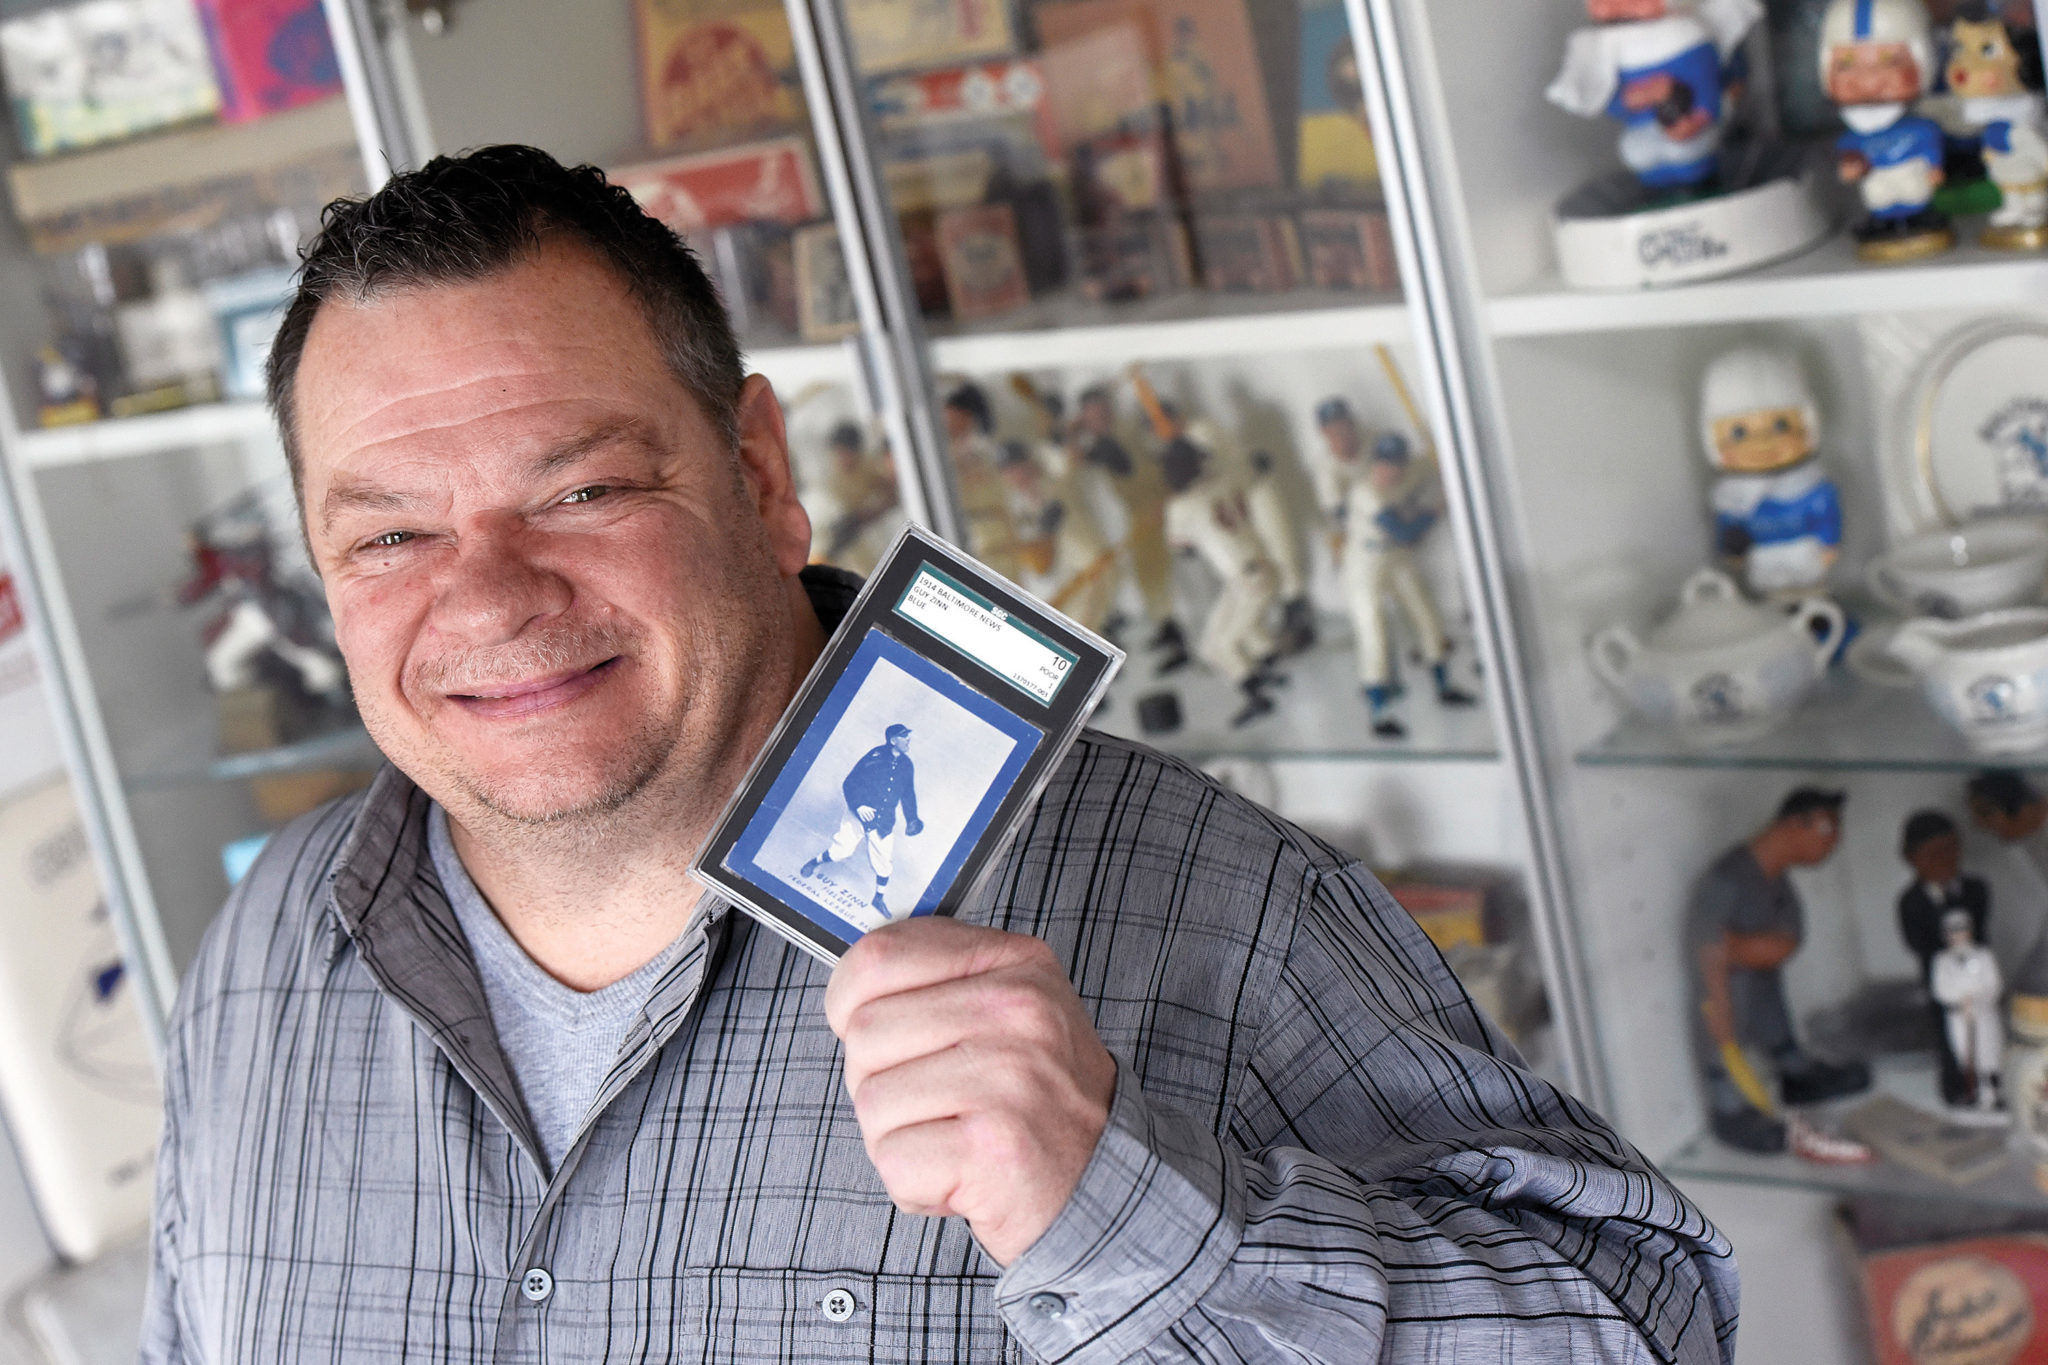 Local Baseball Card Collector Holds All The Cards Jmore